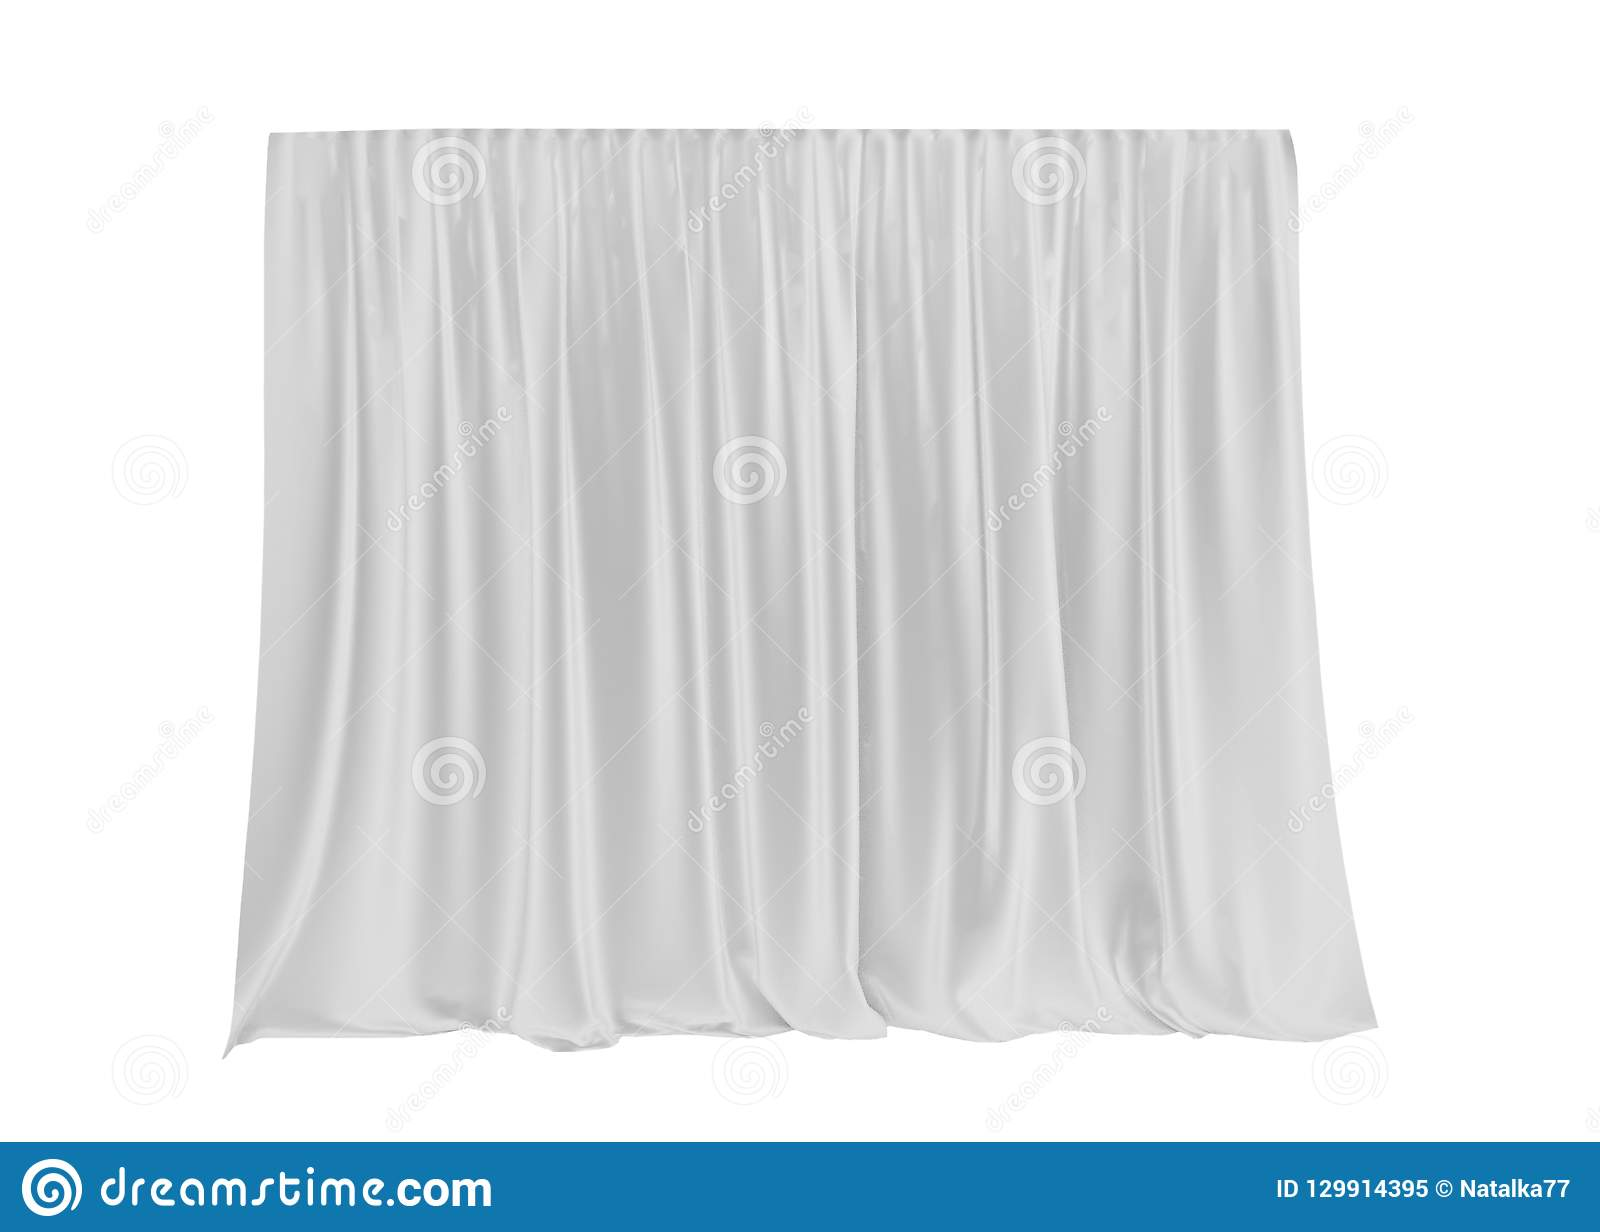 White silk curtain isolated on white background. 3d render.